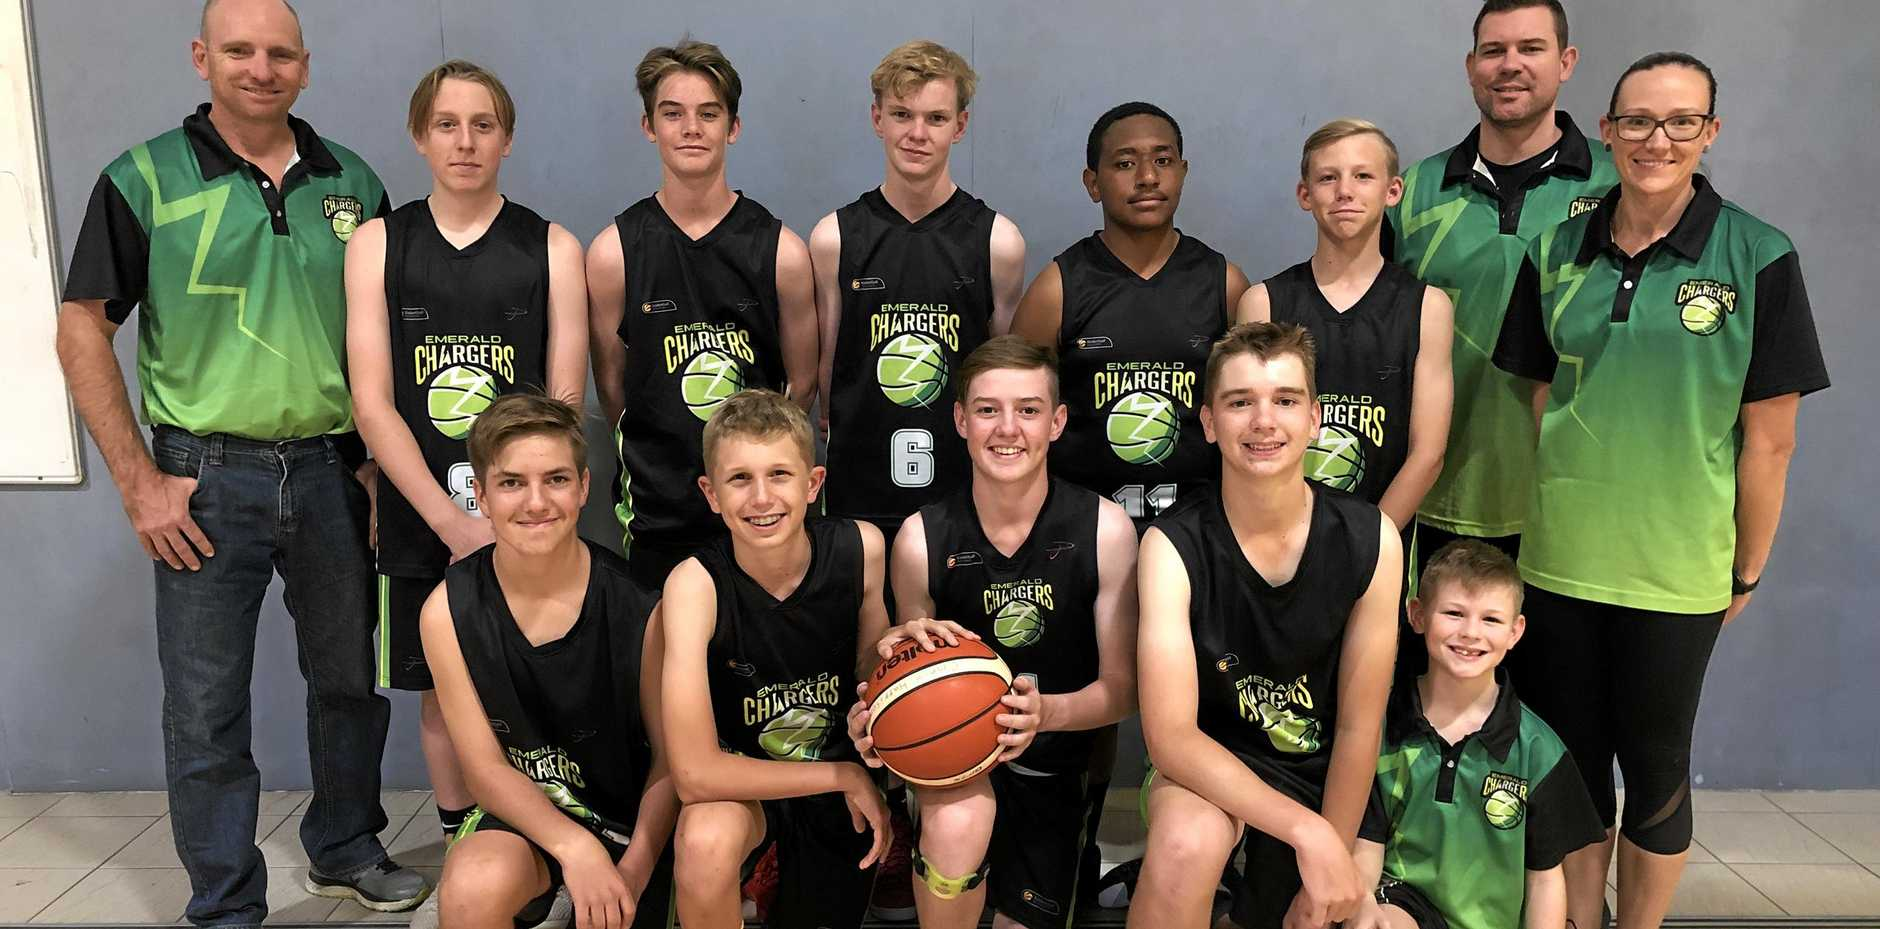 READY TO GO: Emerald Chargers under 16 boys team with assistant manager Justin Shields, coach Chris Todolak and assistant coach Aleisha Catip.